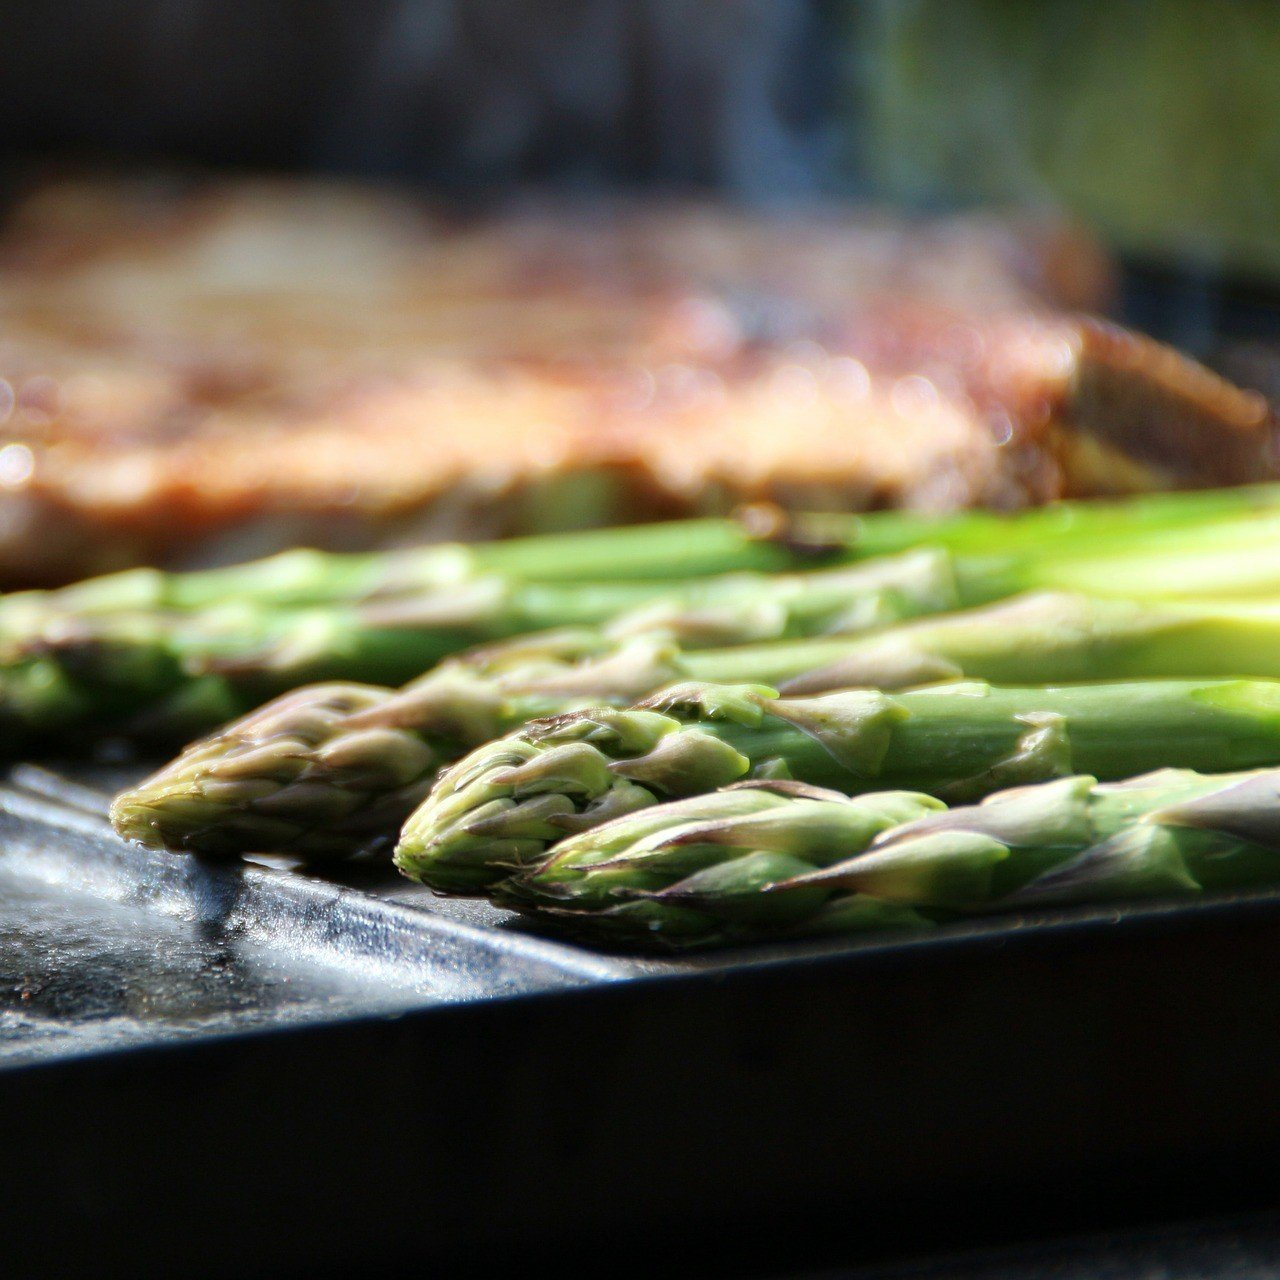 Cooking British Asparagus